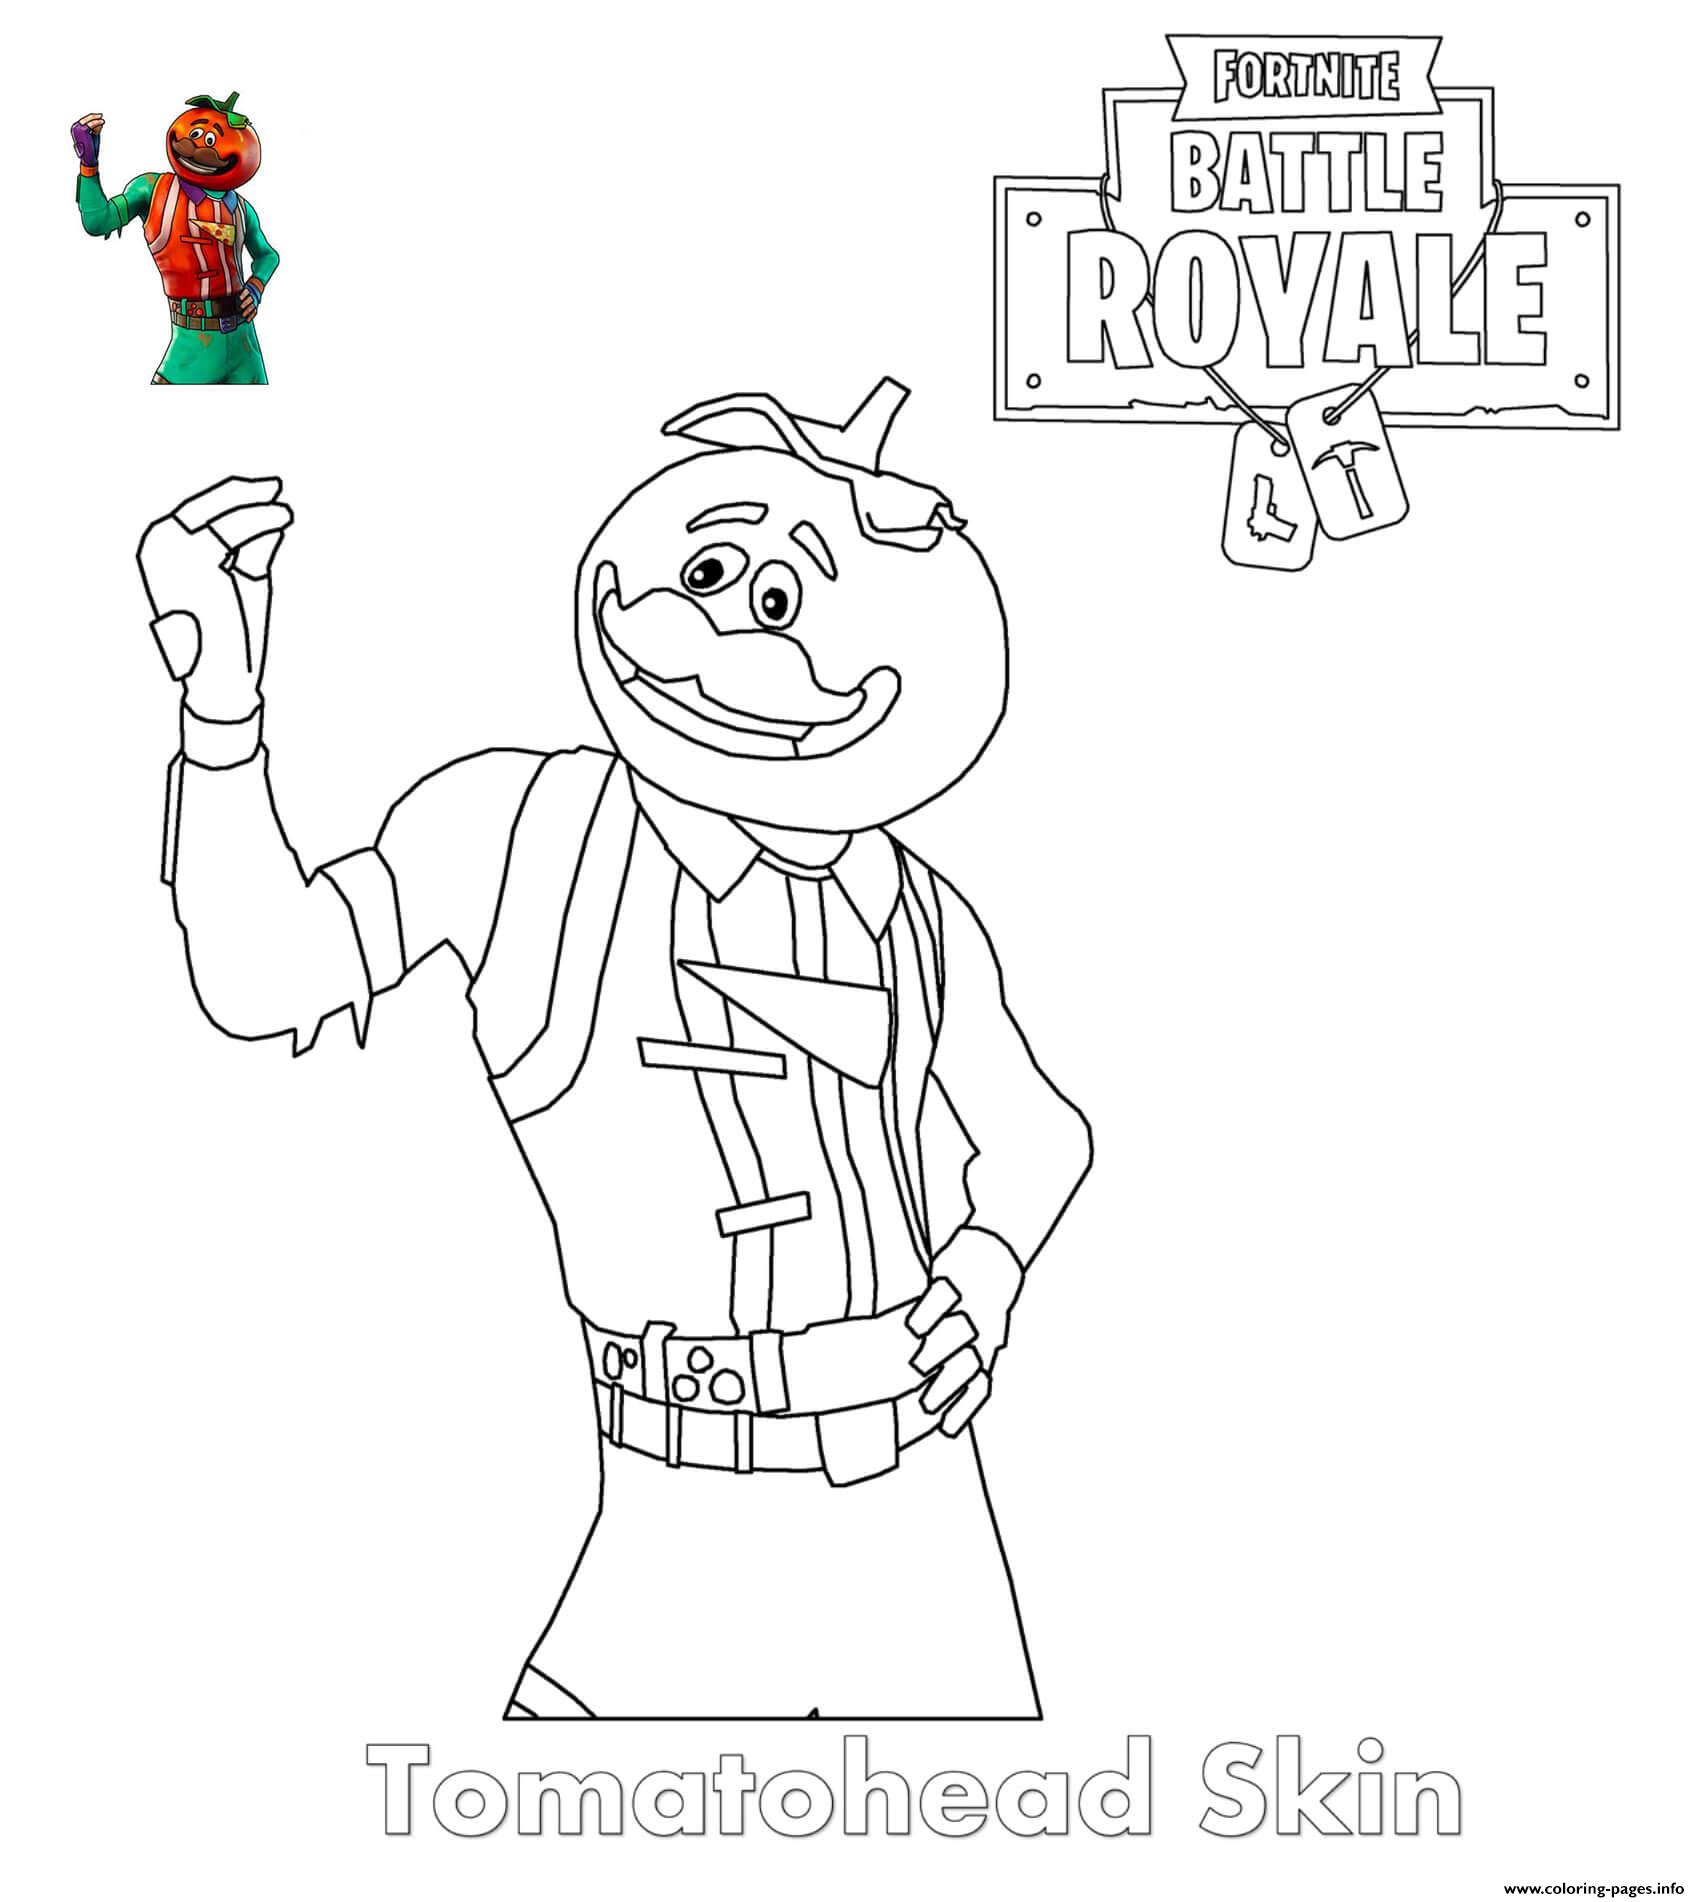 Coloring Pages Of Fortnite Skins - Free Fortnite Qr Codes